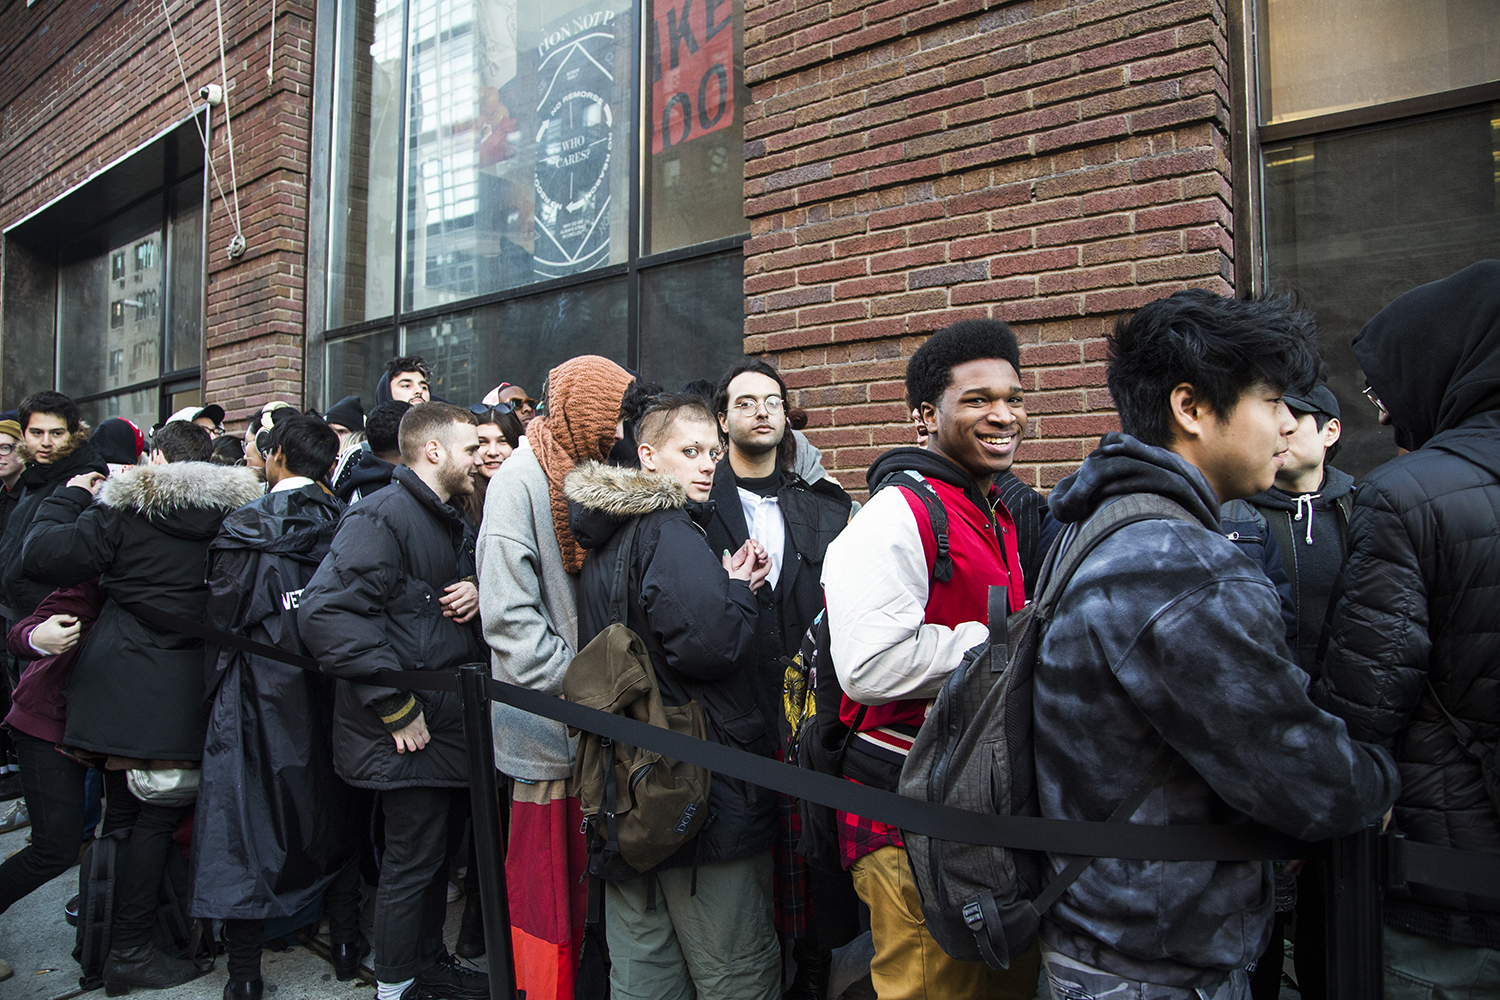 Line for THE PURGE Photo by Megan Mack. Courtesy of Red Bull Arts New York.